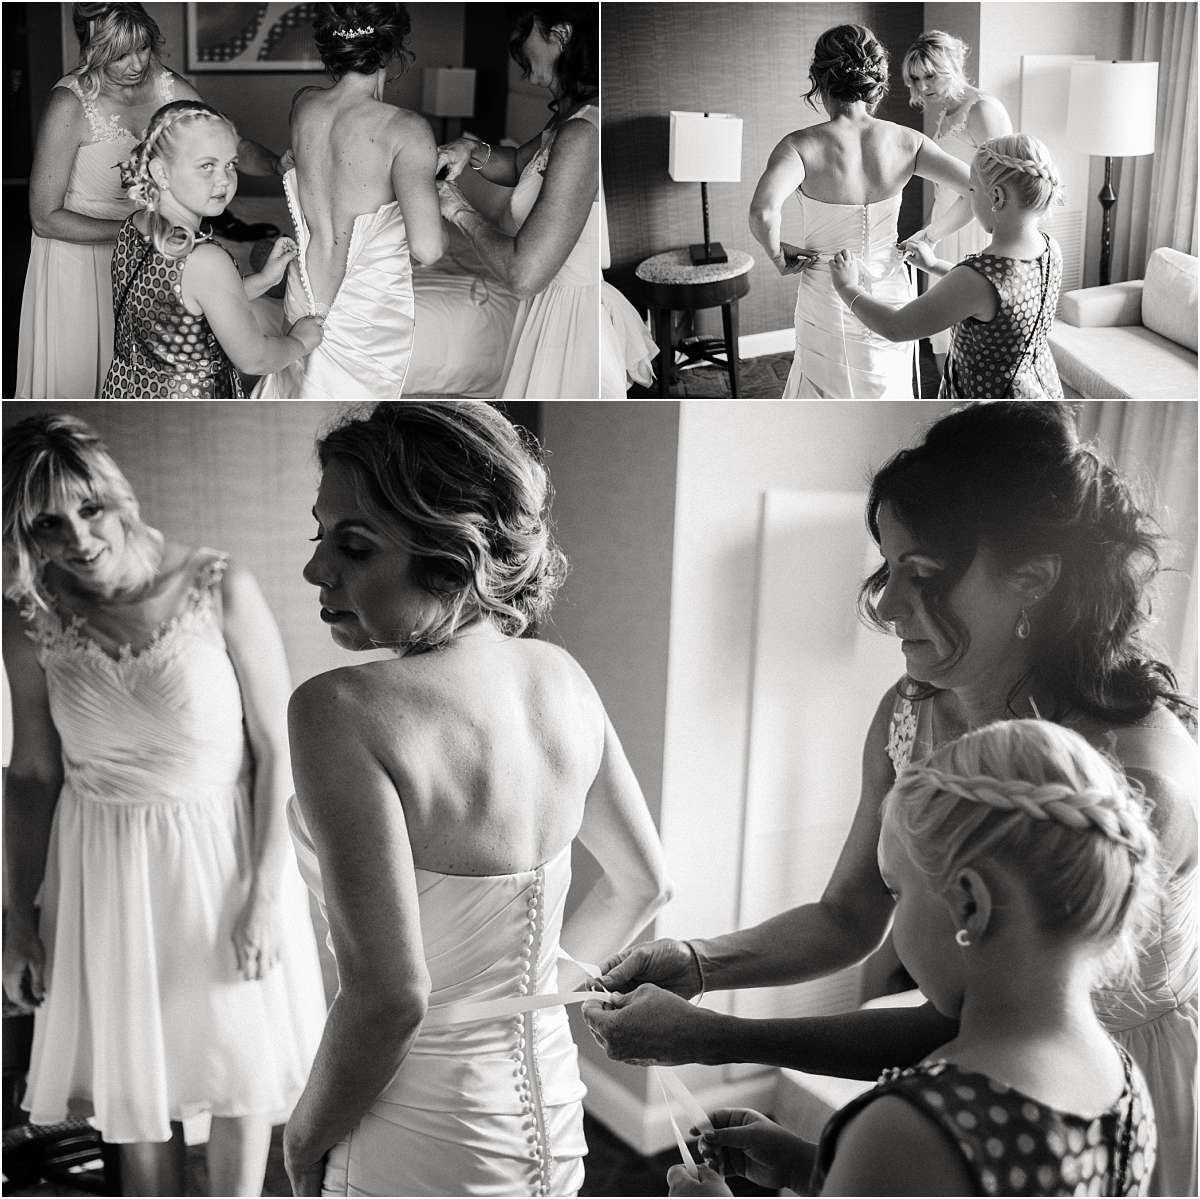 black and white photography, getting ready photos, bride putting on wedding dress, bridesmaids, mother of the bride, flower girl, colorado wedding planner, l elizabeth events, denver city wedding, summer wedding